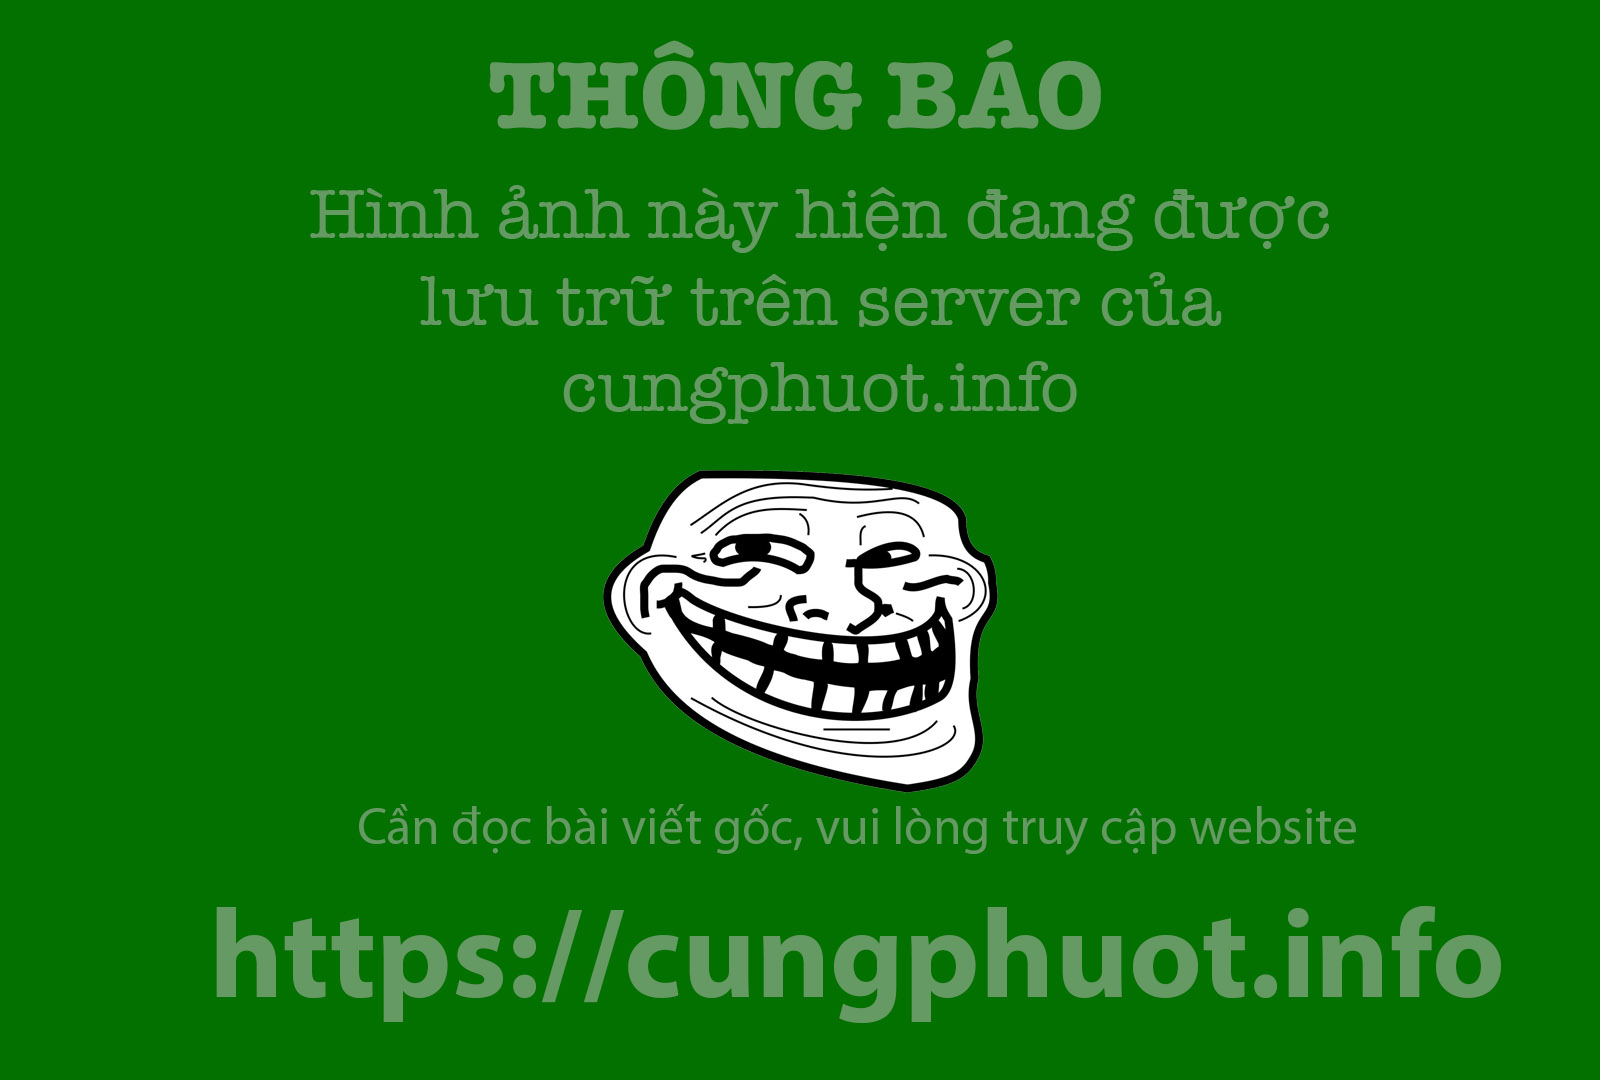 Mien Tay mua nuoc noi di mai chang het diem check-in hinh anh 20